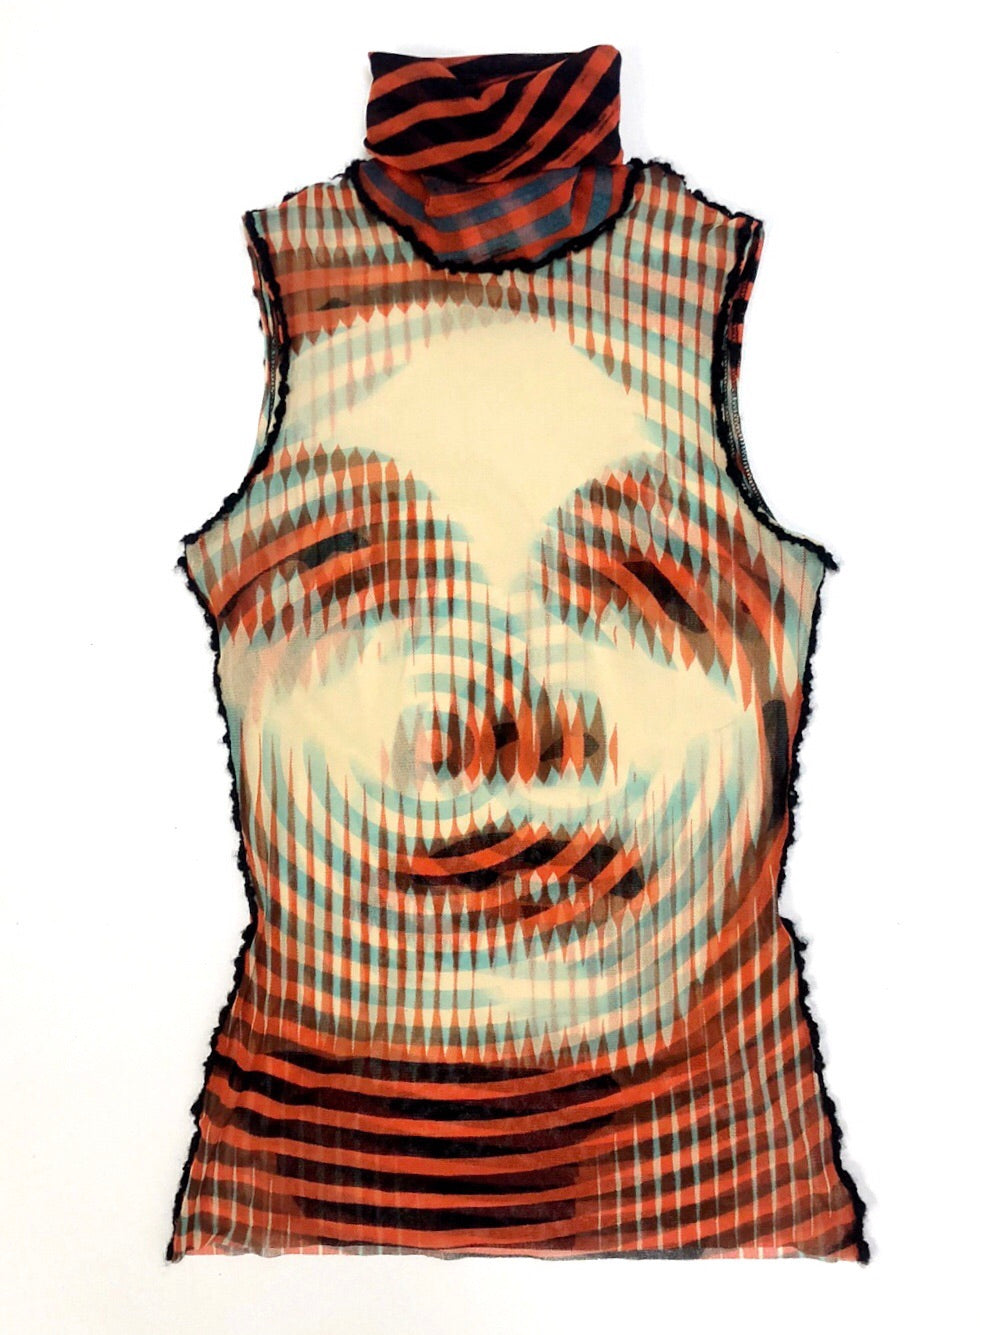 Jean Paul Gaultier Hypnotic Face Top